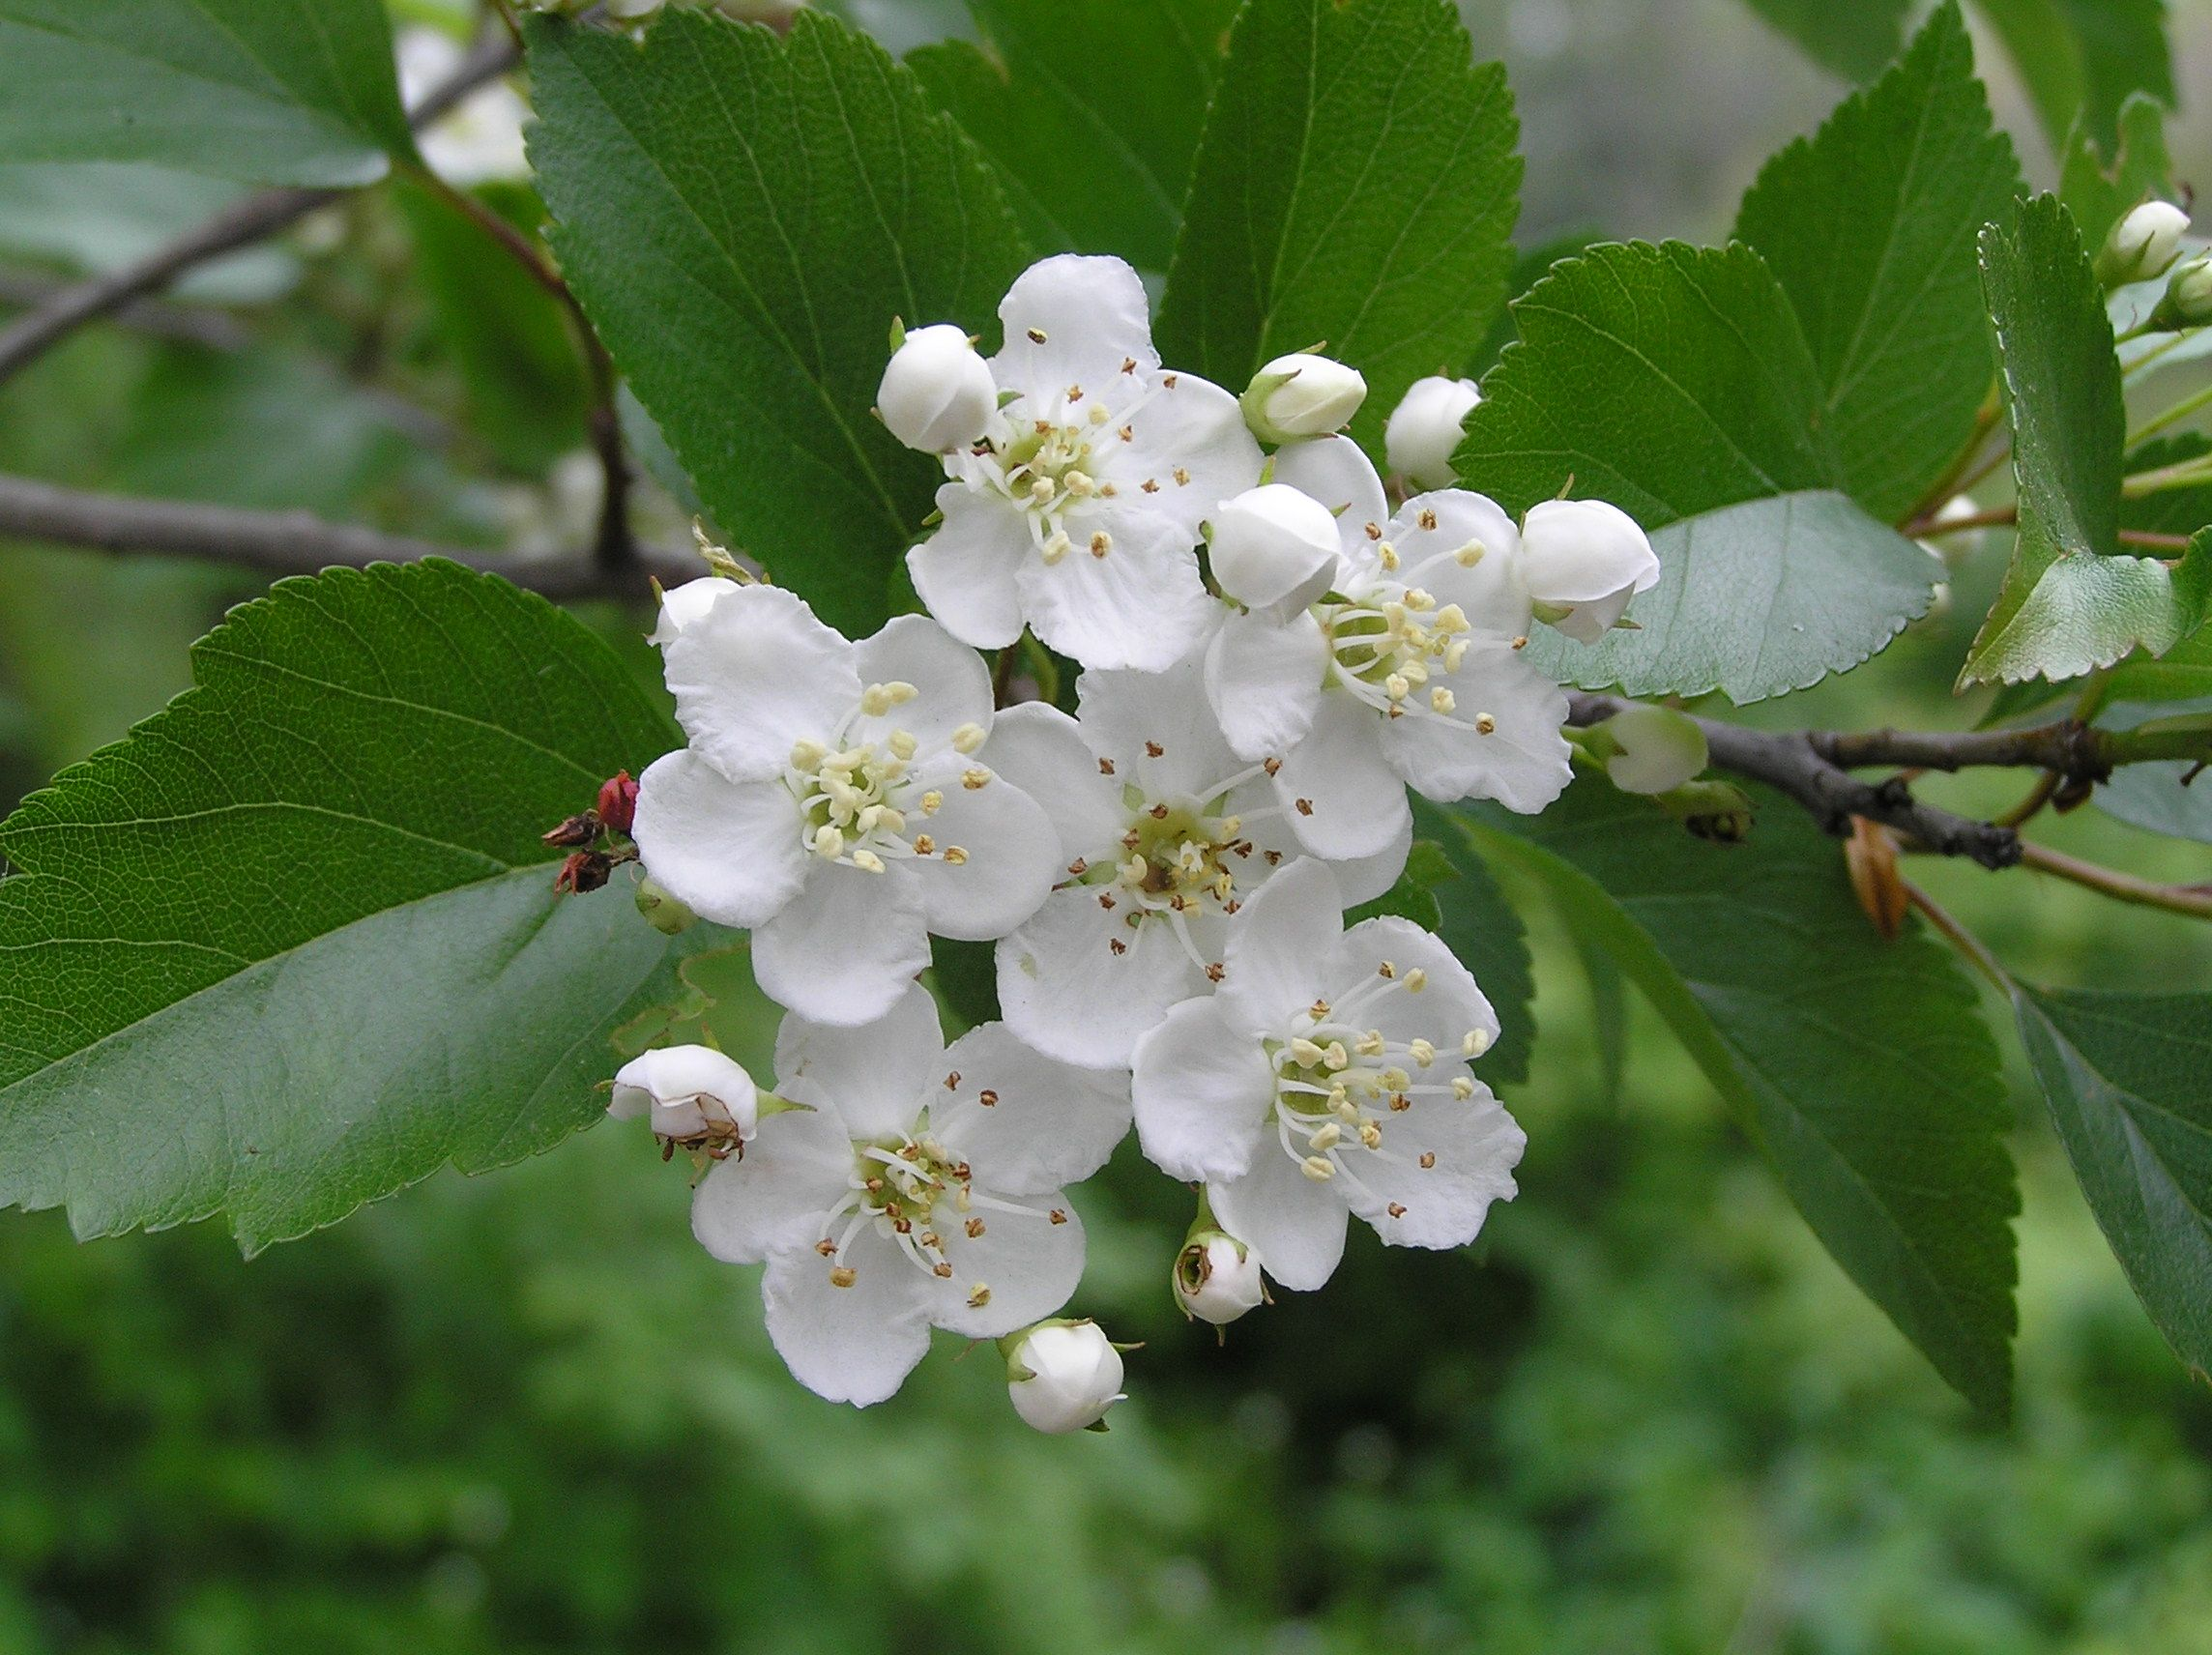 Hawthorn Missouri State Flower Hawthorne Flower Branson Missouri Taney County